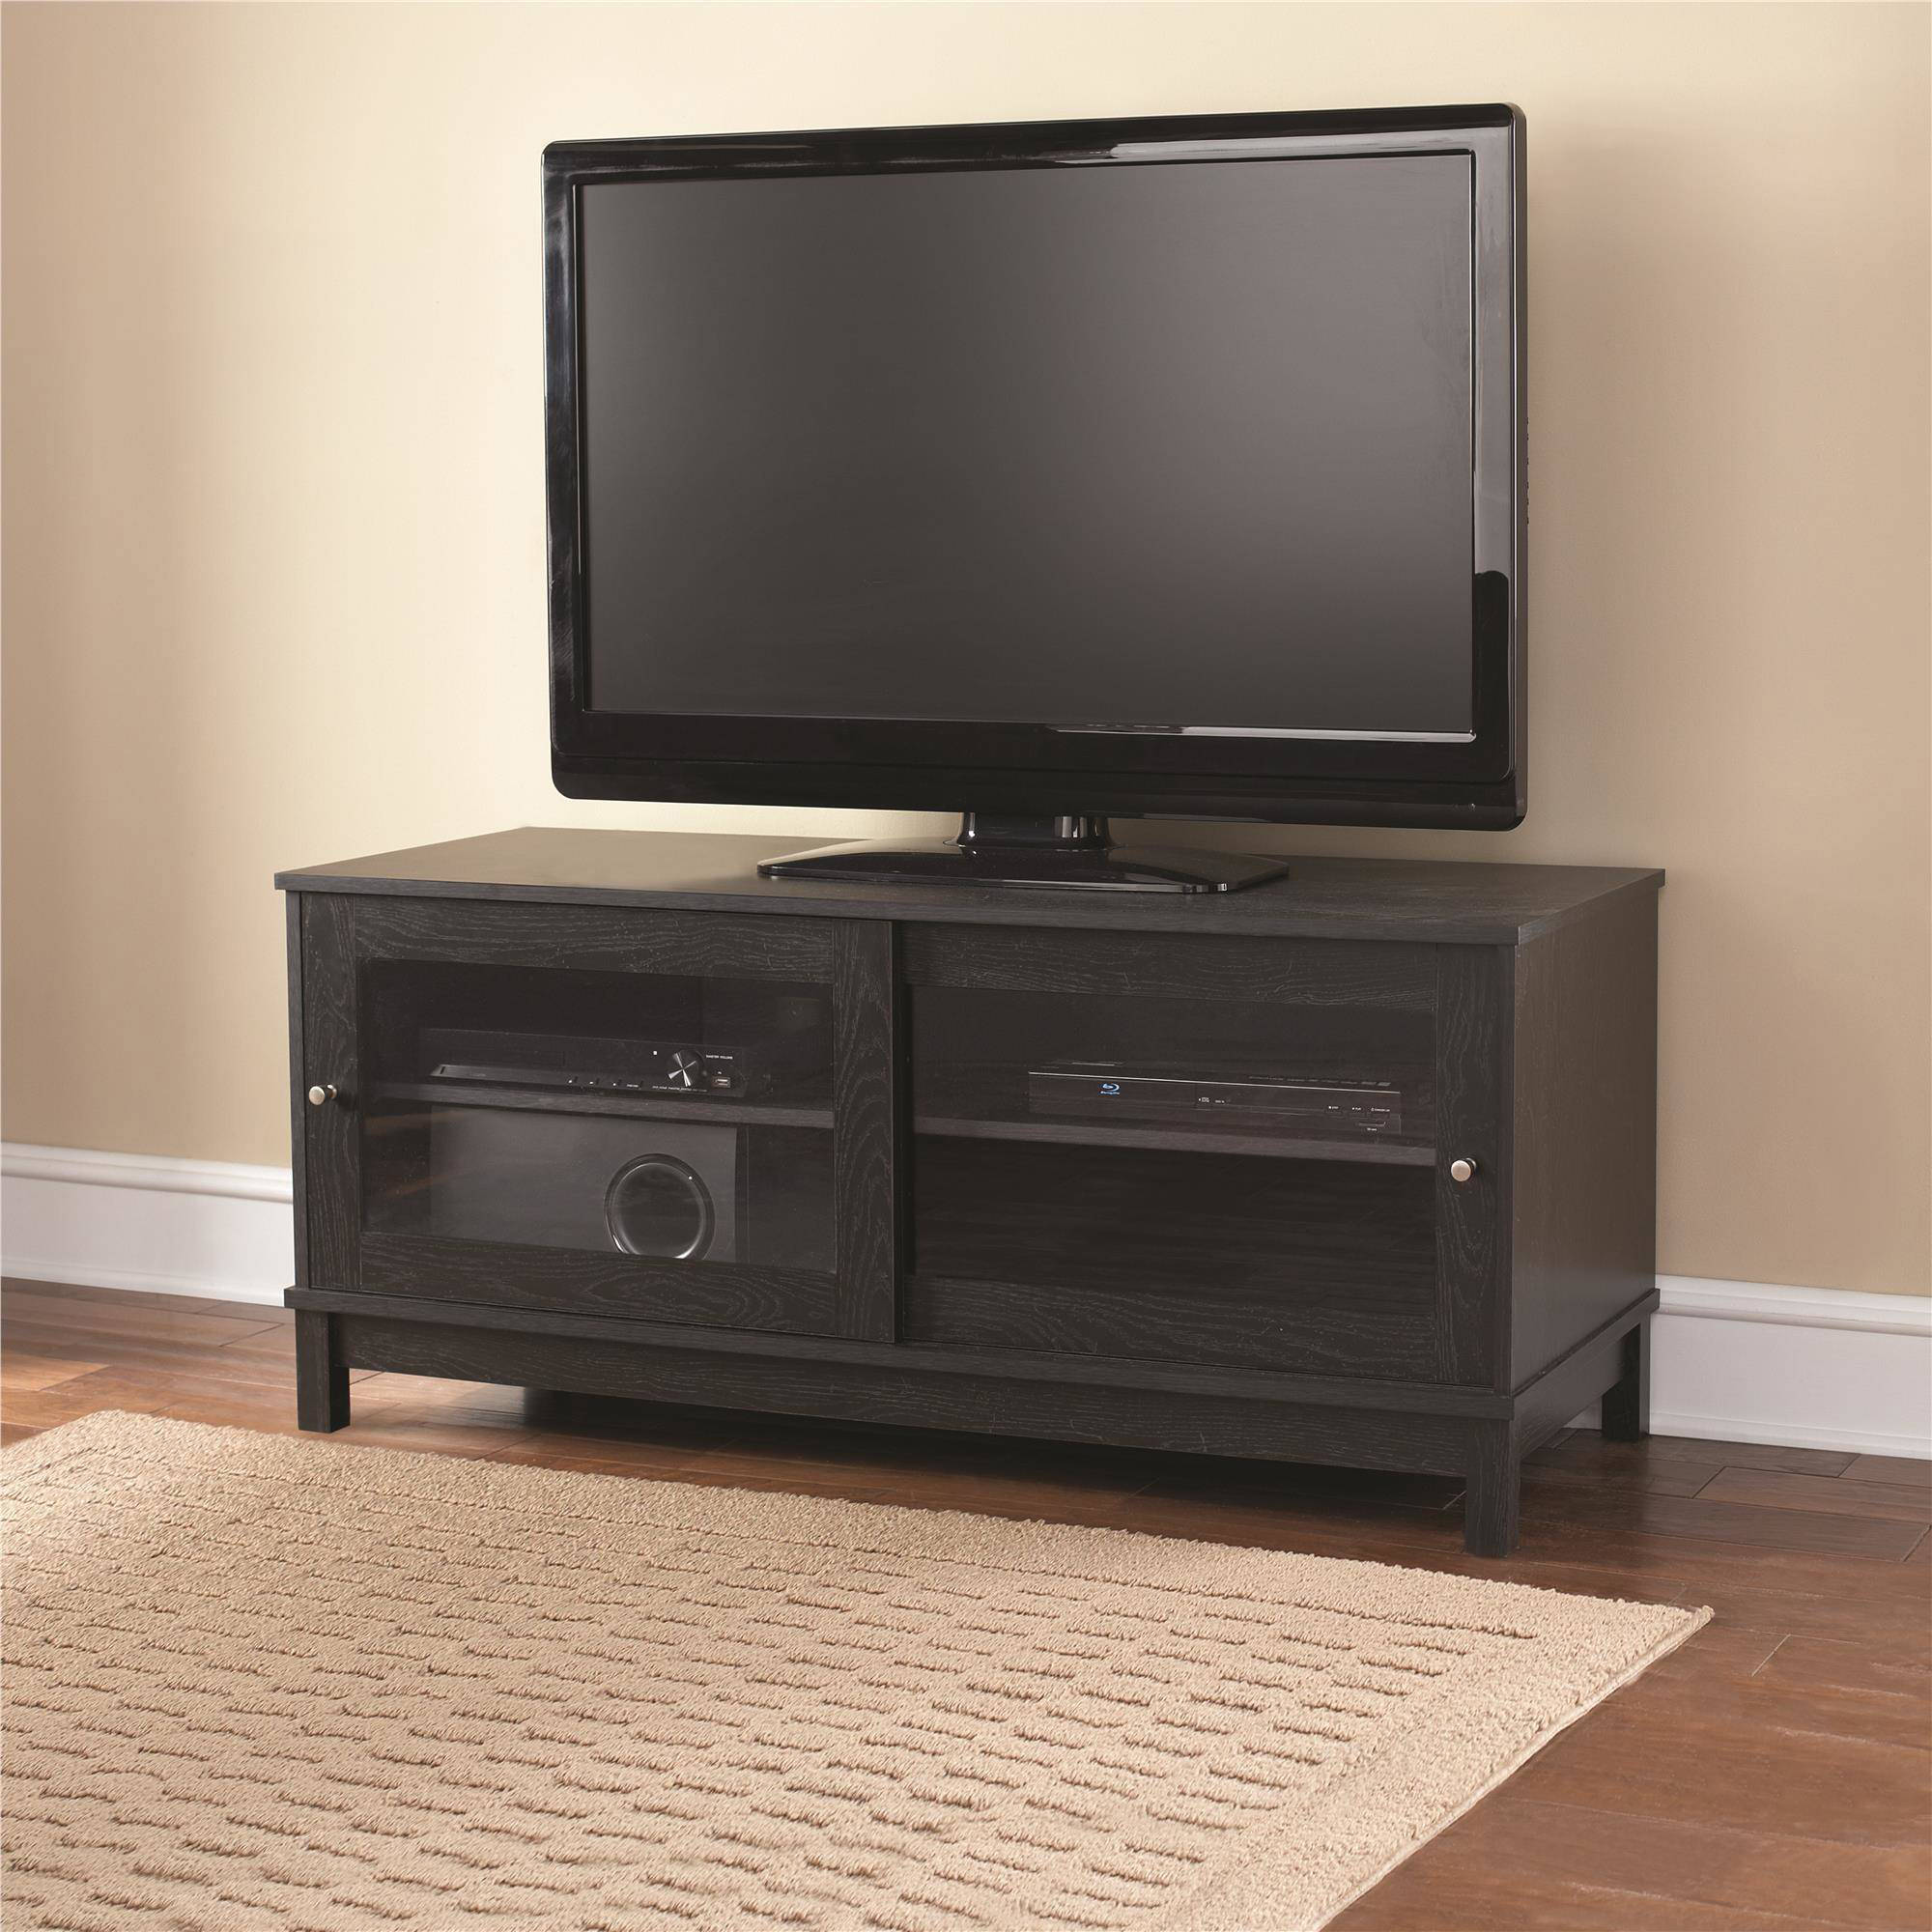 Mainstays 55  TV Stand with Sliding Glass Doors Multiple Colors & Mainstays 55